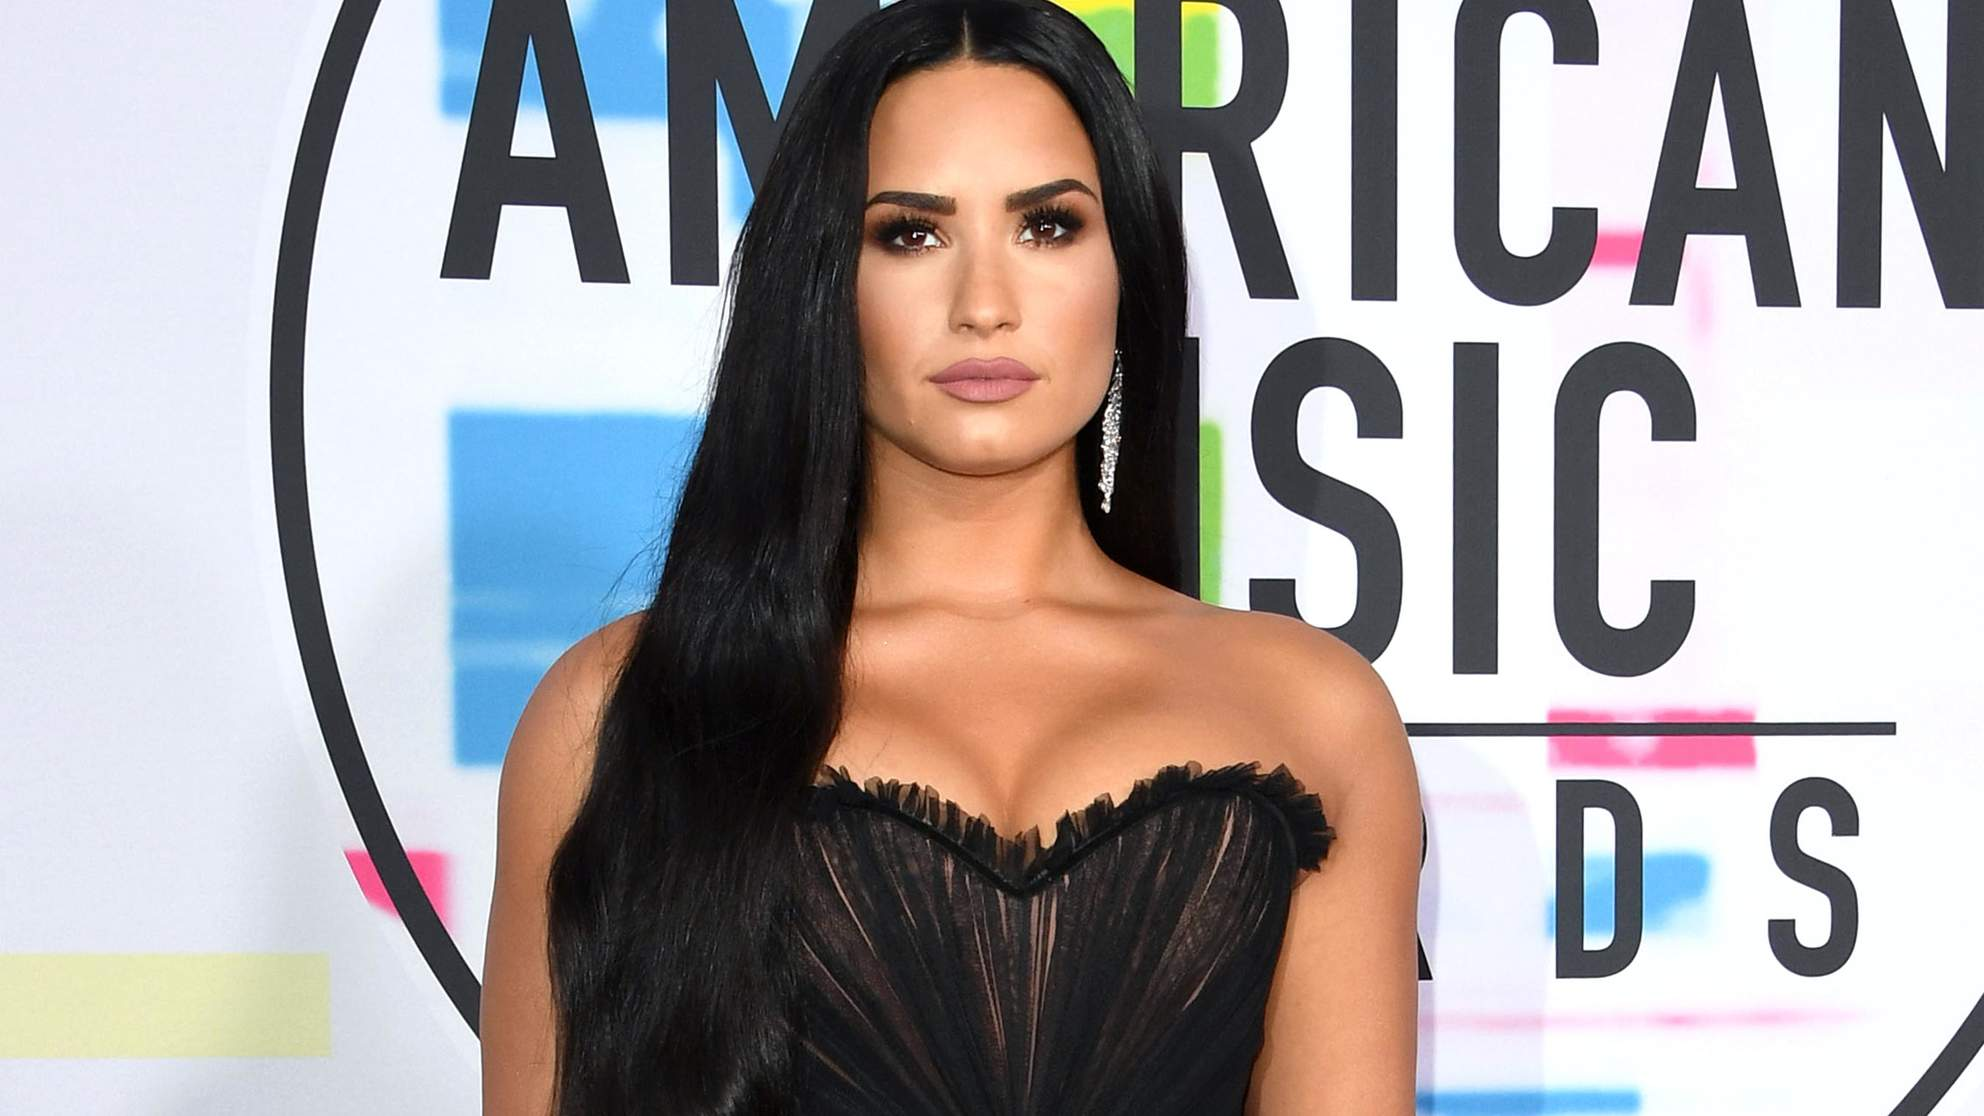 Demi Lovato Praises Bebe Rexha for Blasting Designers Who Body Shamed Her Over Grammys Dress